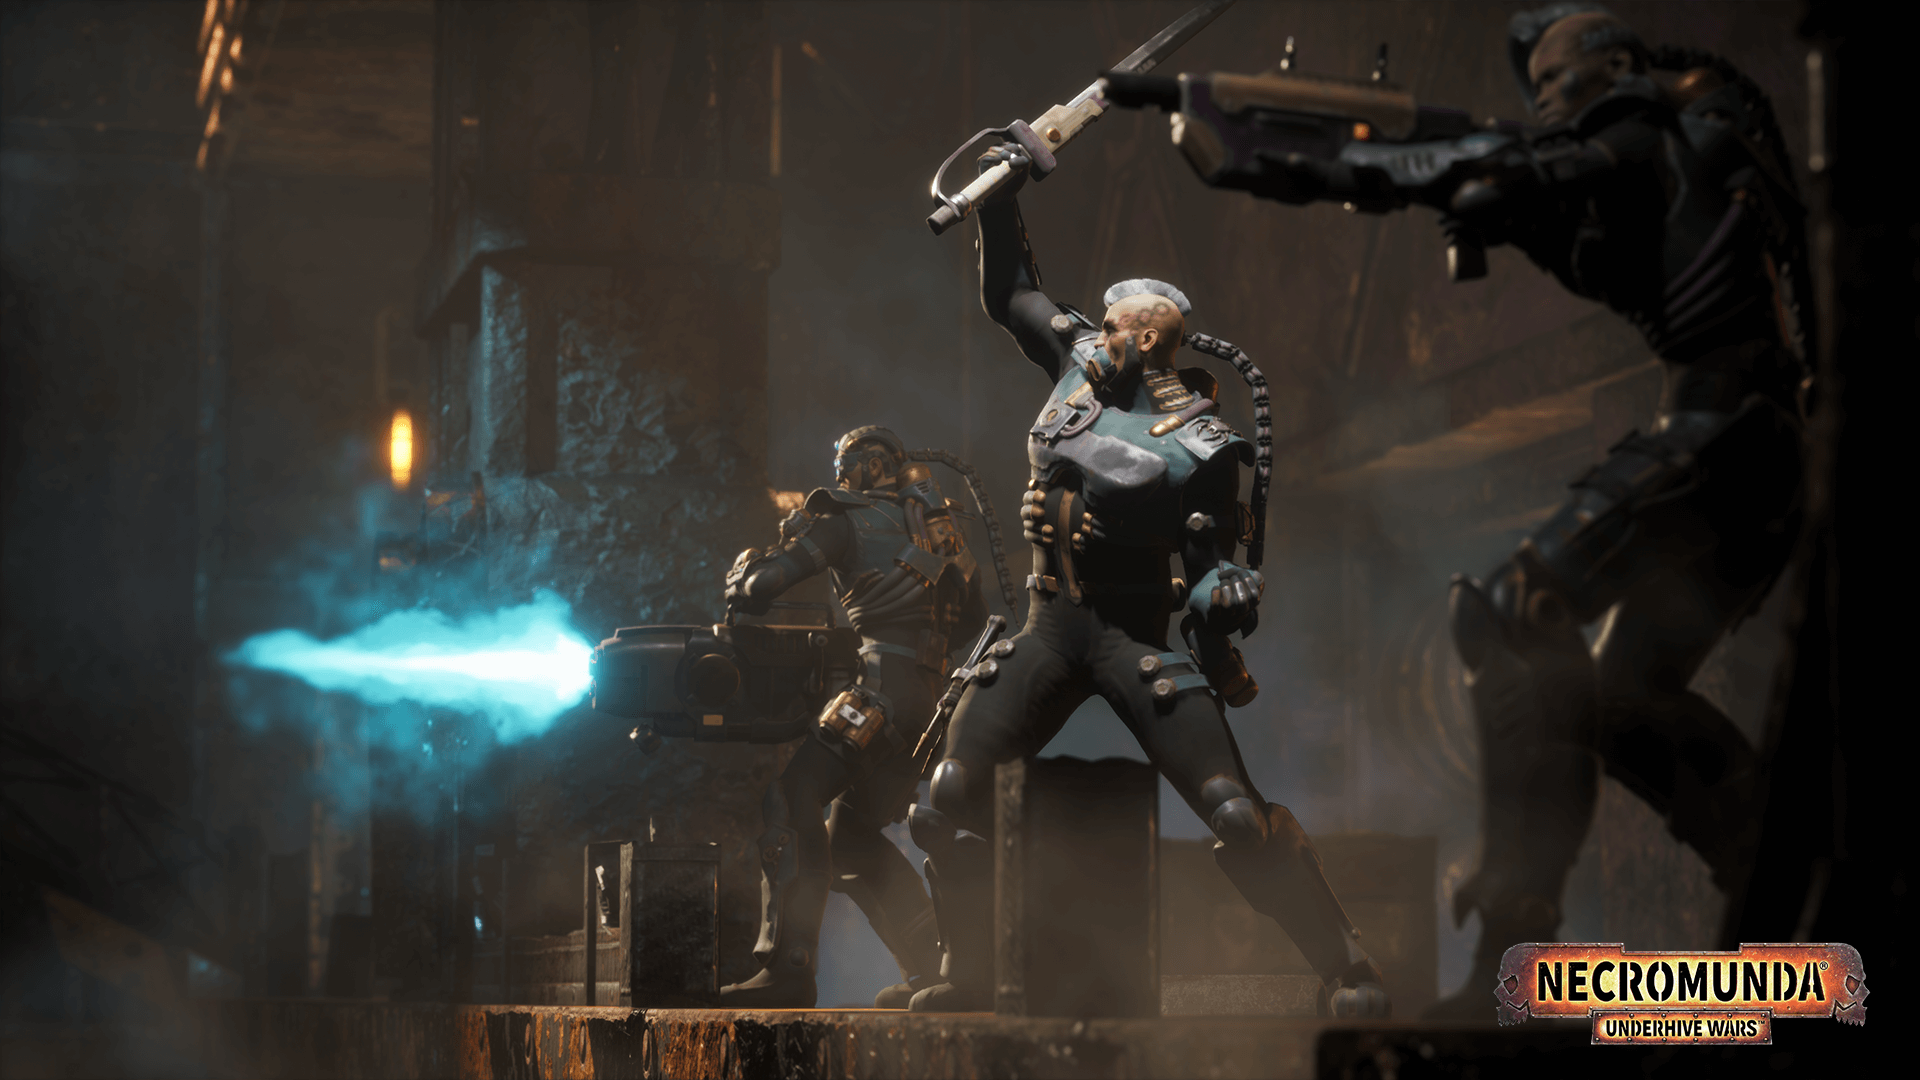 Necromunda: Underhive Wars First DLC is Out Now